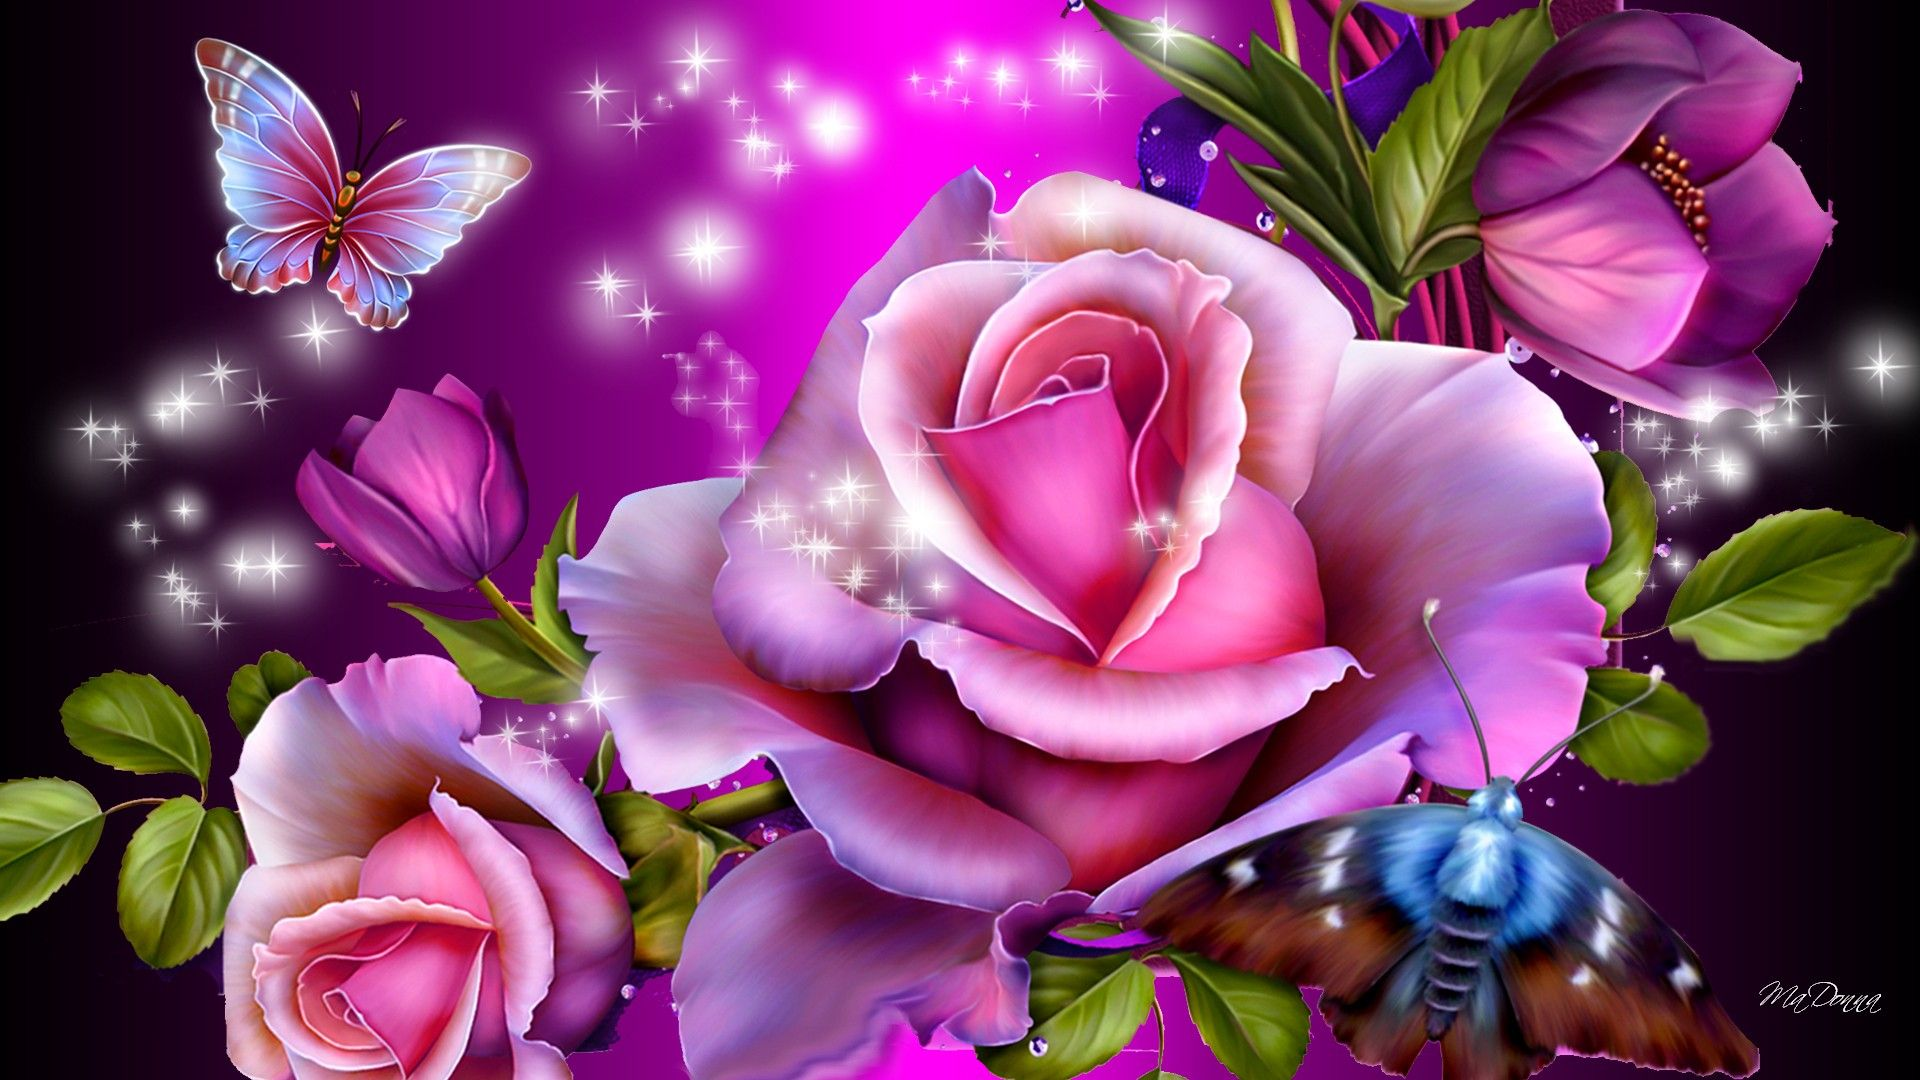 3d Wallpaper With Rainbow Butterfly Download 3d Hd Colour Design Butterfly Wallpaper Rose Wallpaper Butterfly Crafts